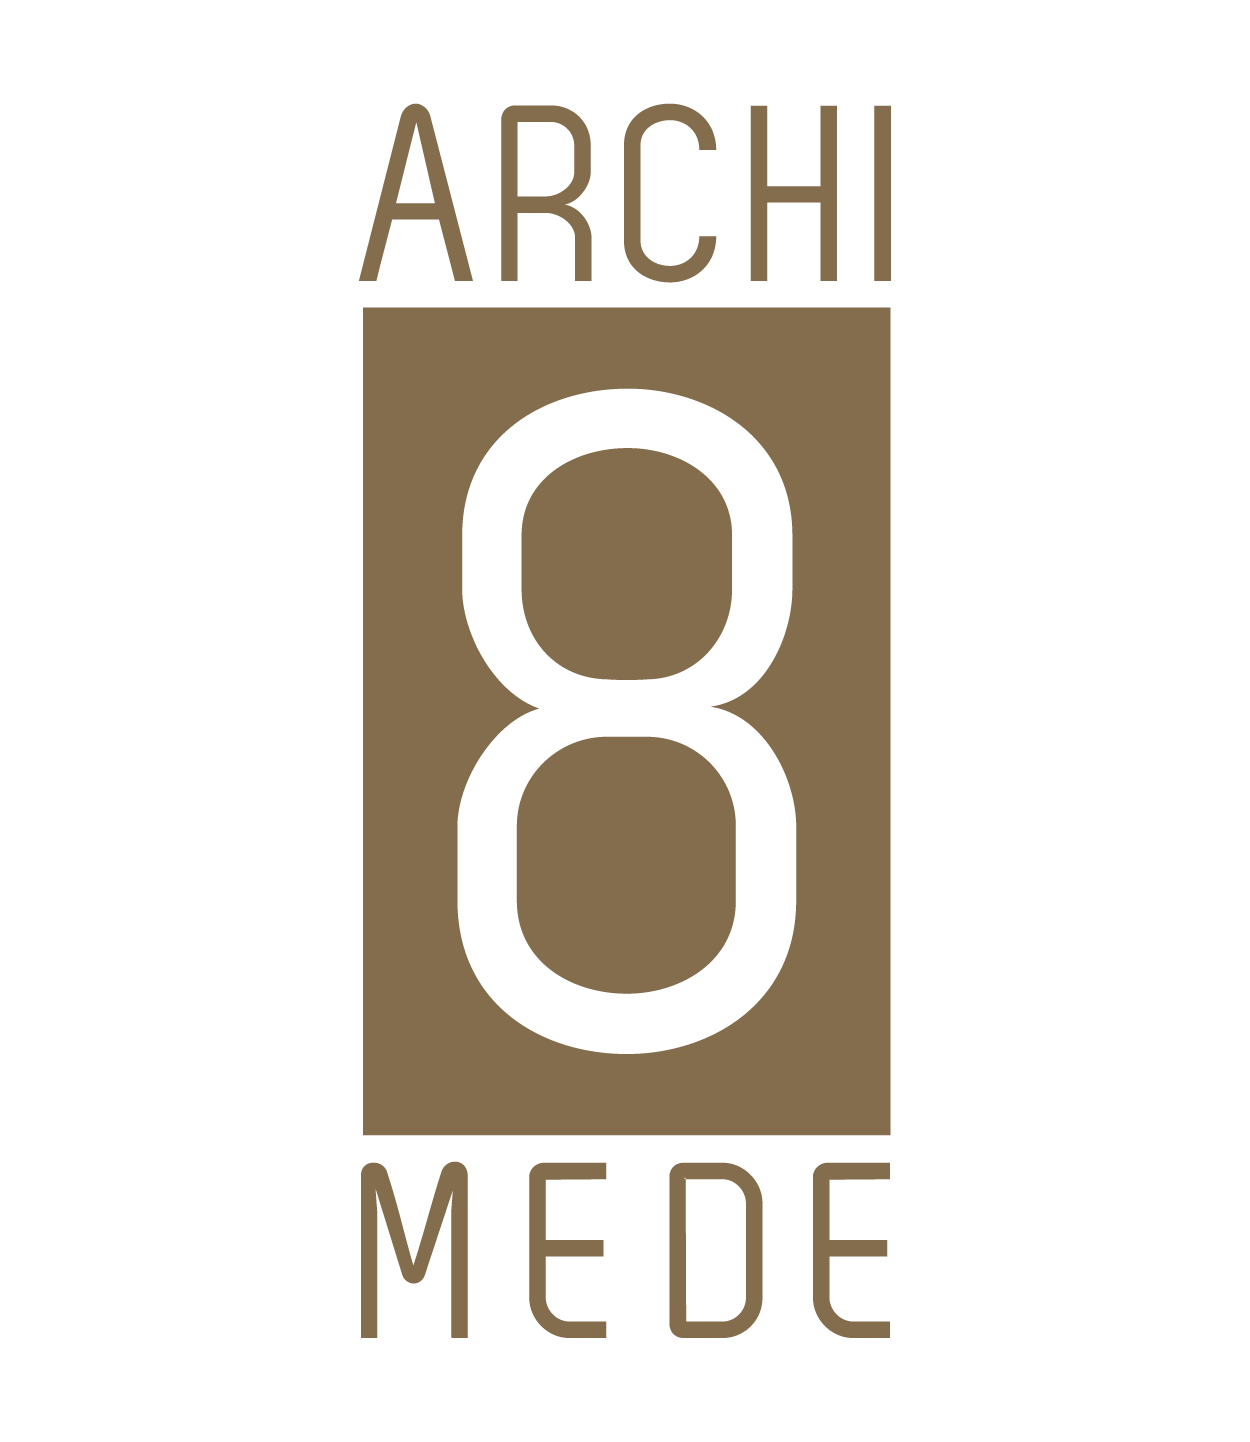 archimede-8